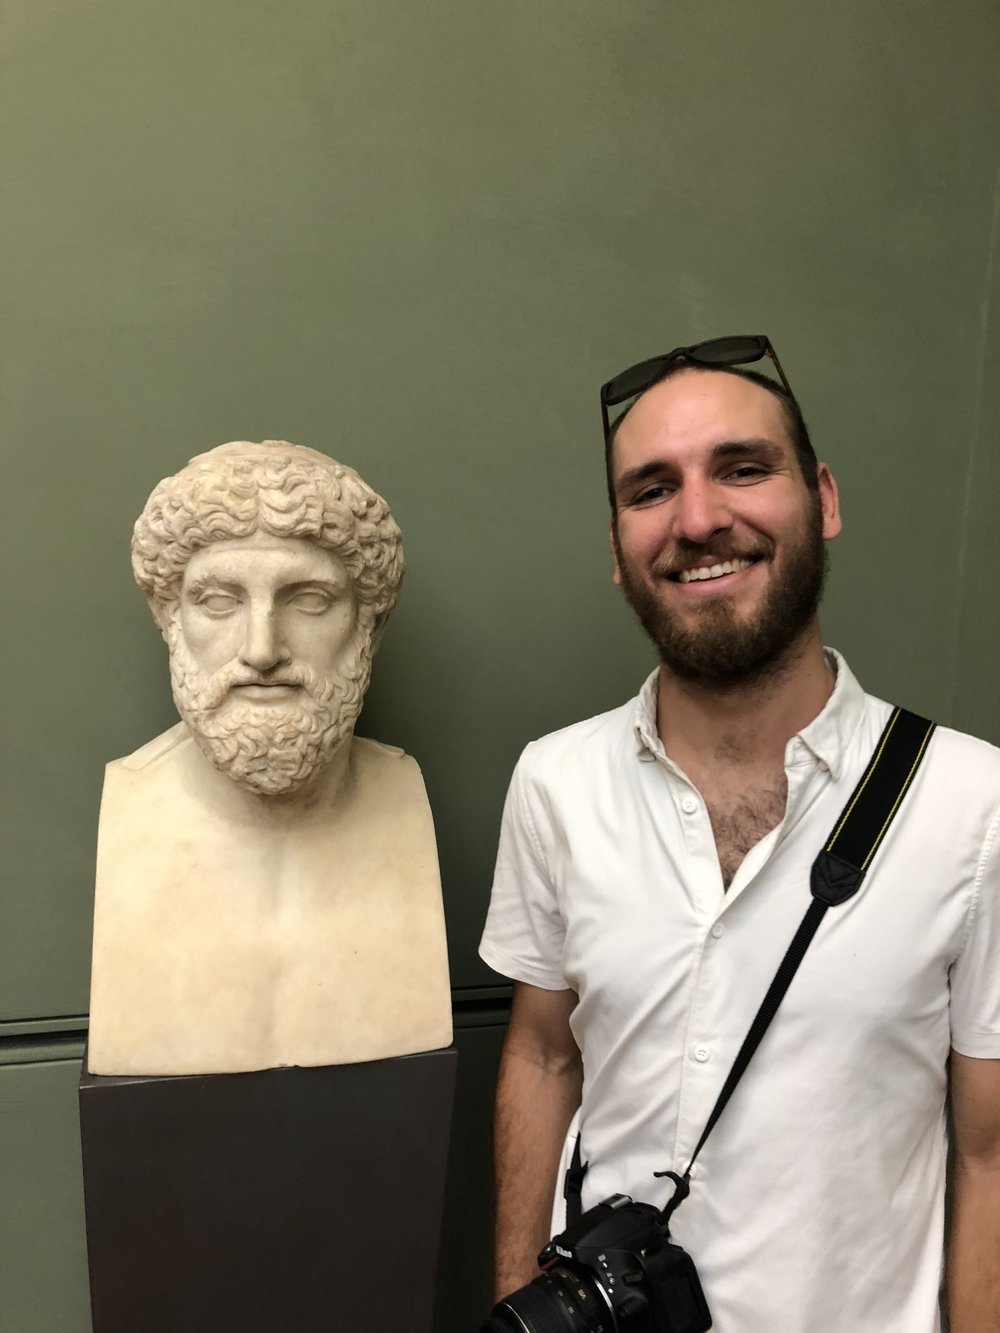 Jon and a favorite Philosopher of his. Or maybe I took this picture because of the similiarities...